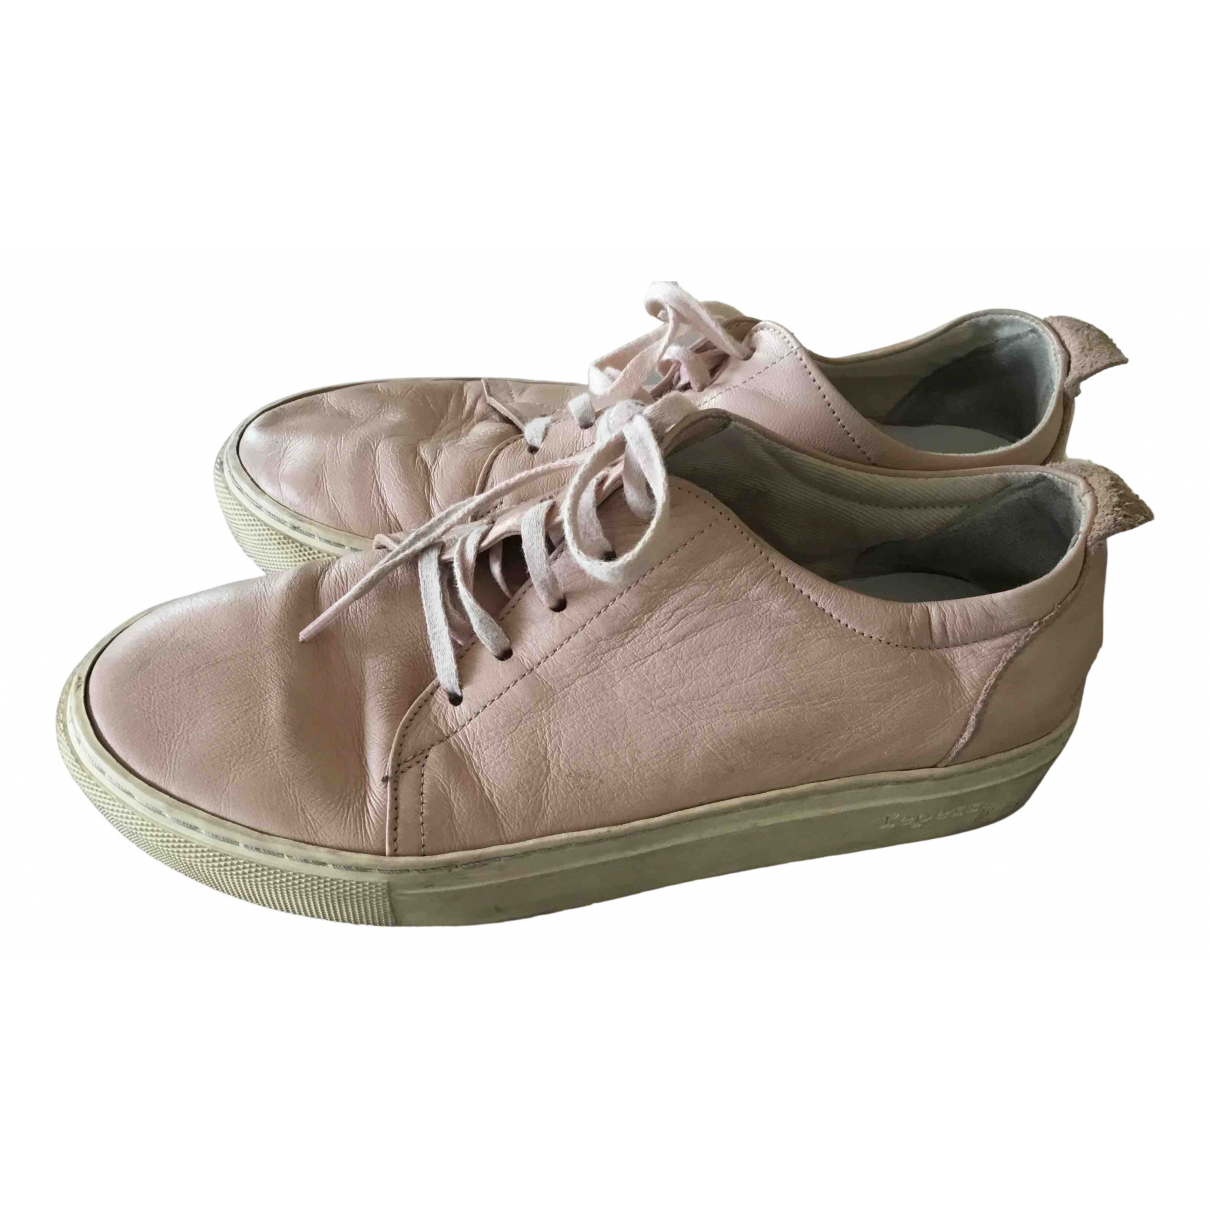 Repetto N Pink Leather Trainers for Women 36 EU